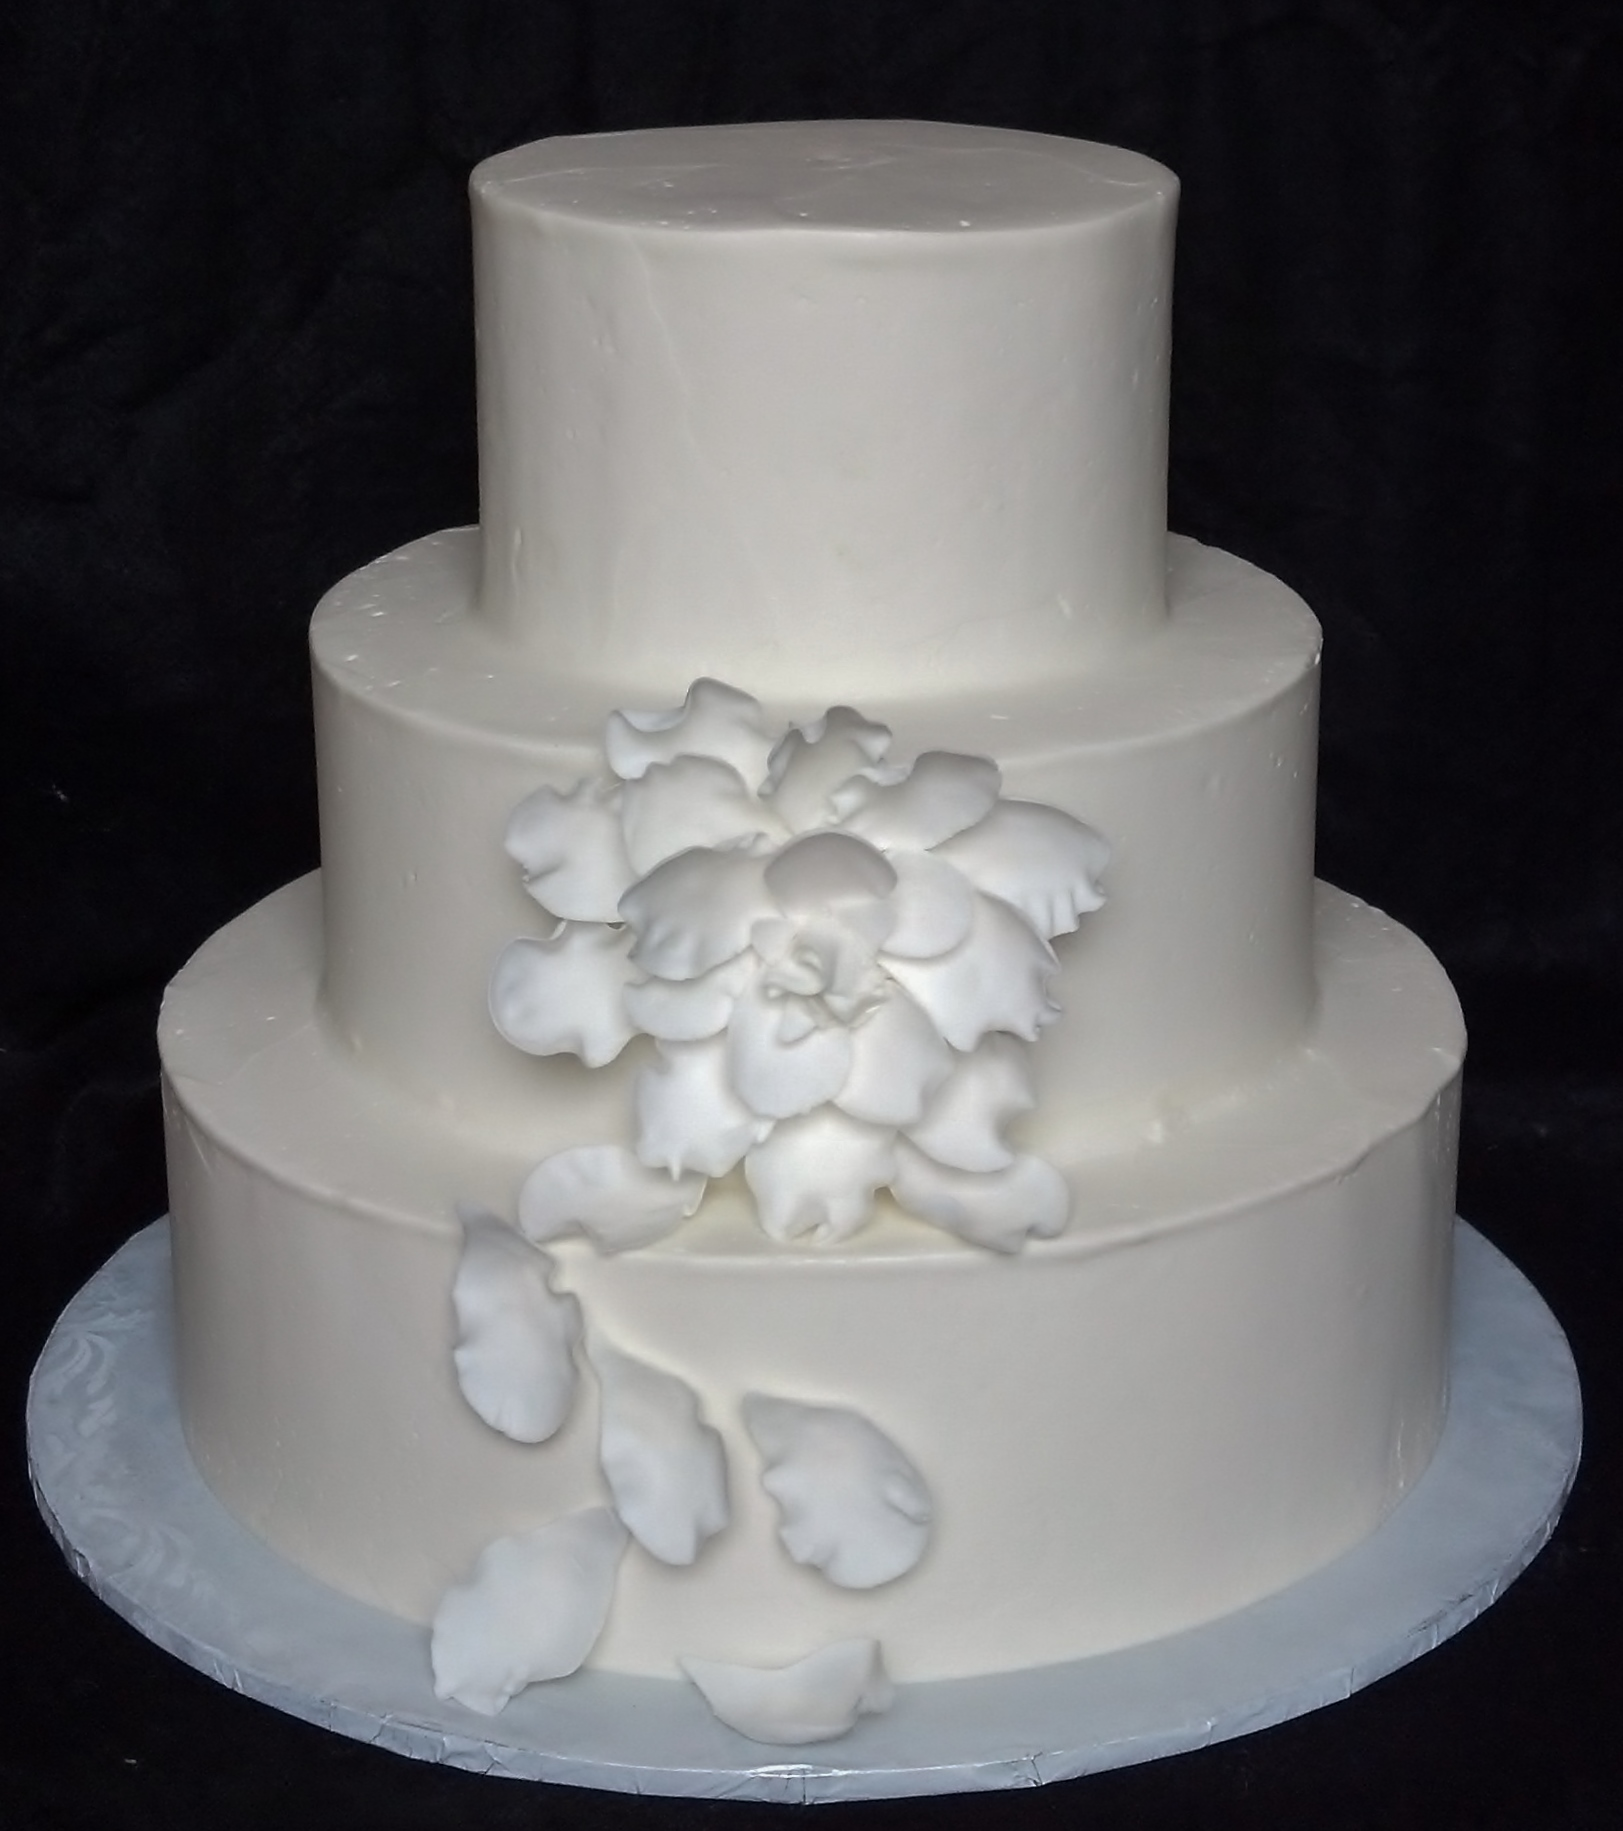 desserts glenmoore pa wedding cake average cost of a wedding cake